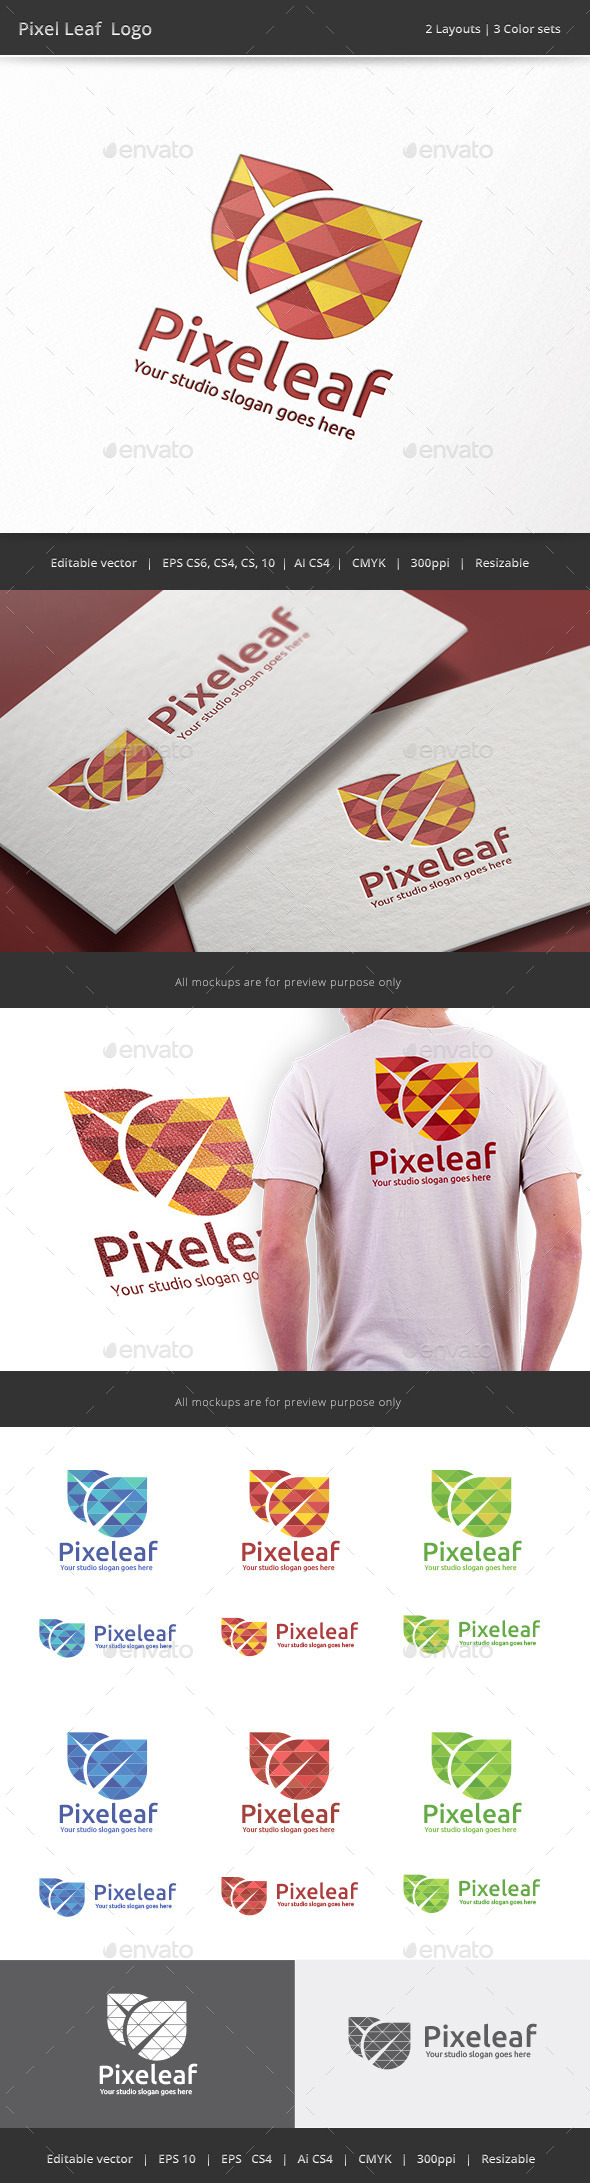 Pixel Leaf Logo - Vector Abstract